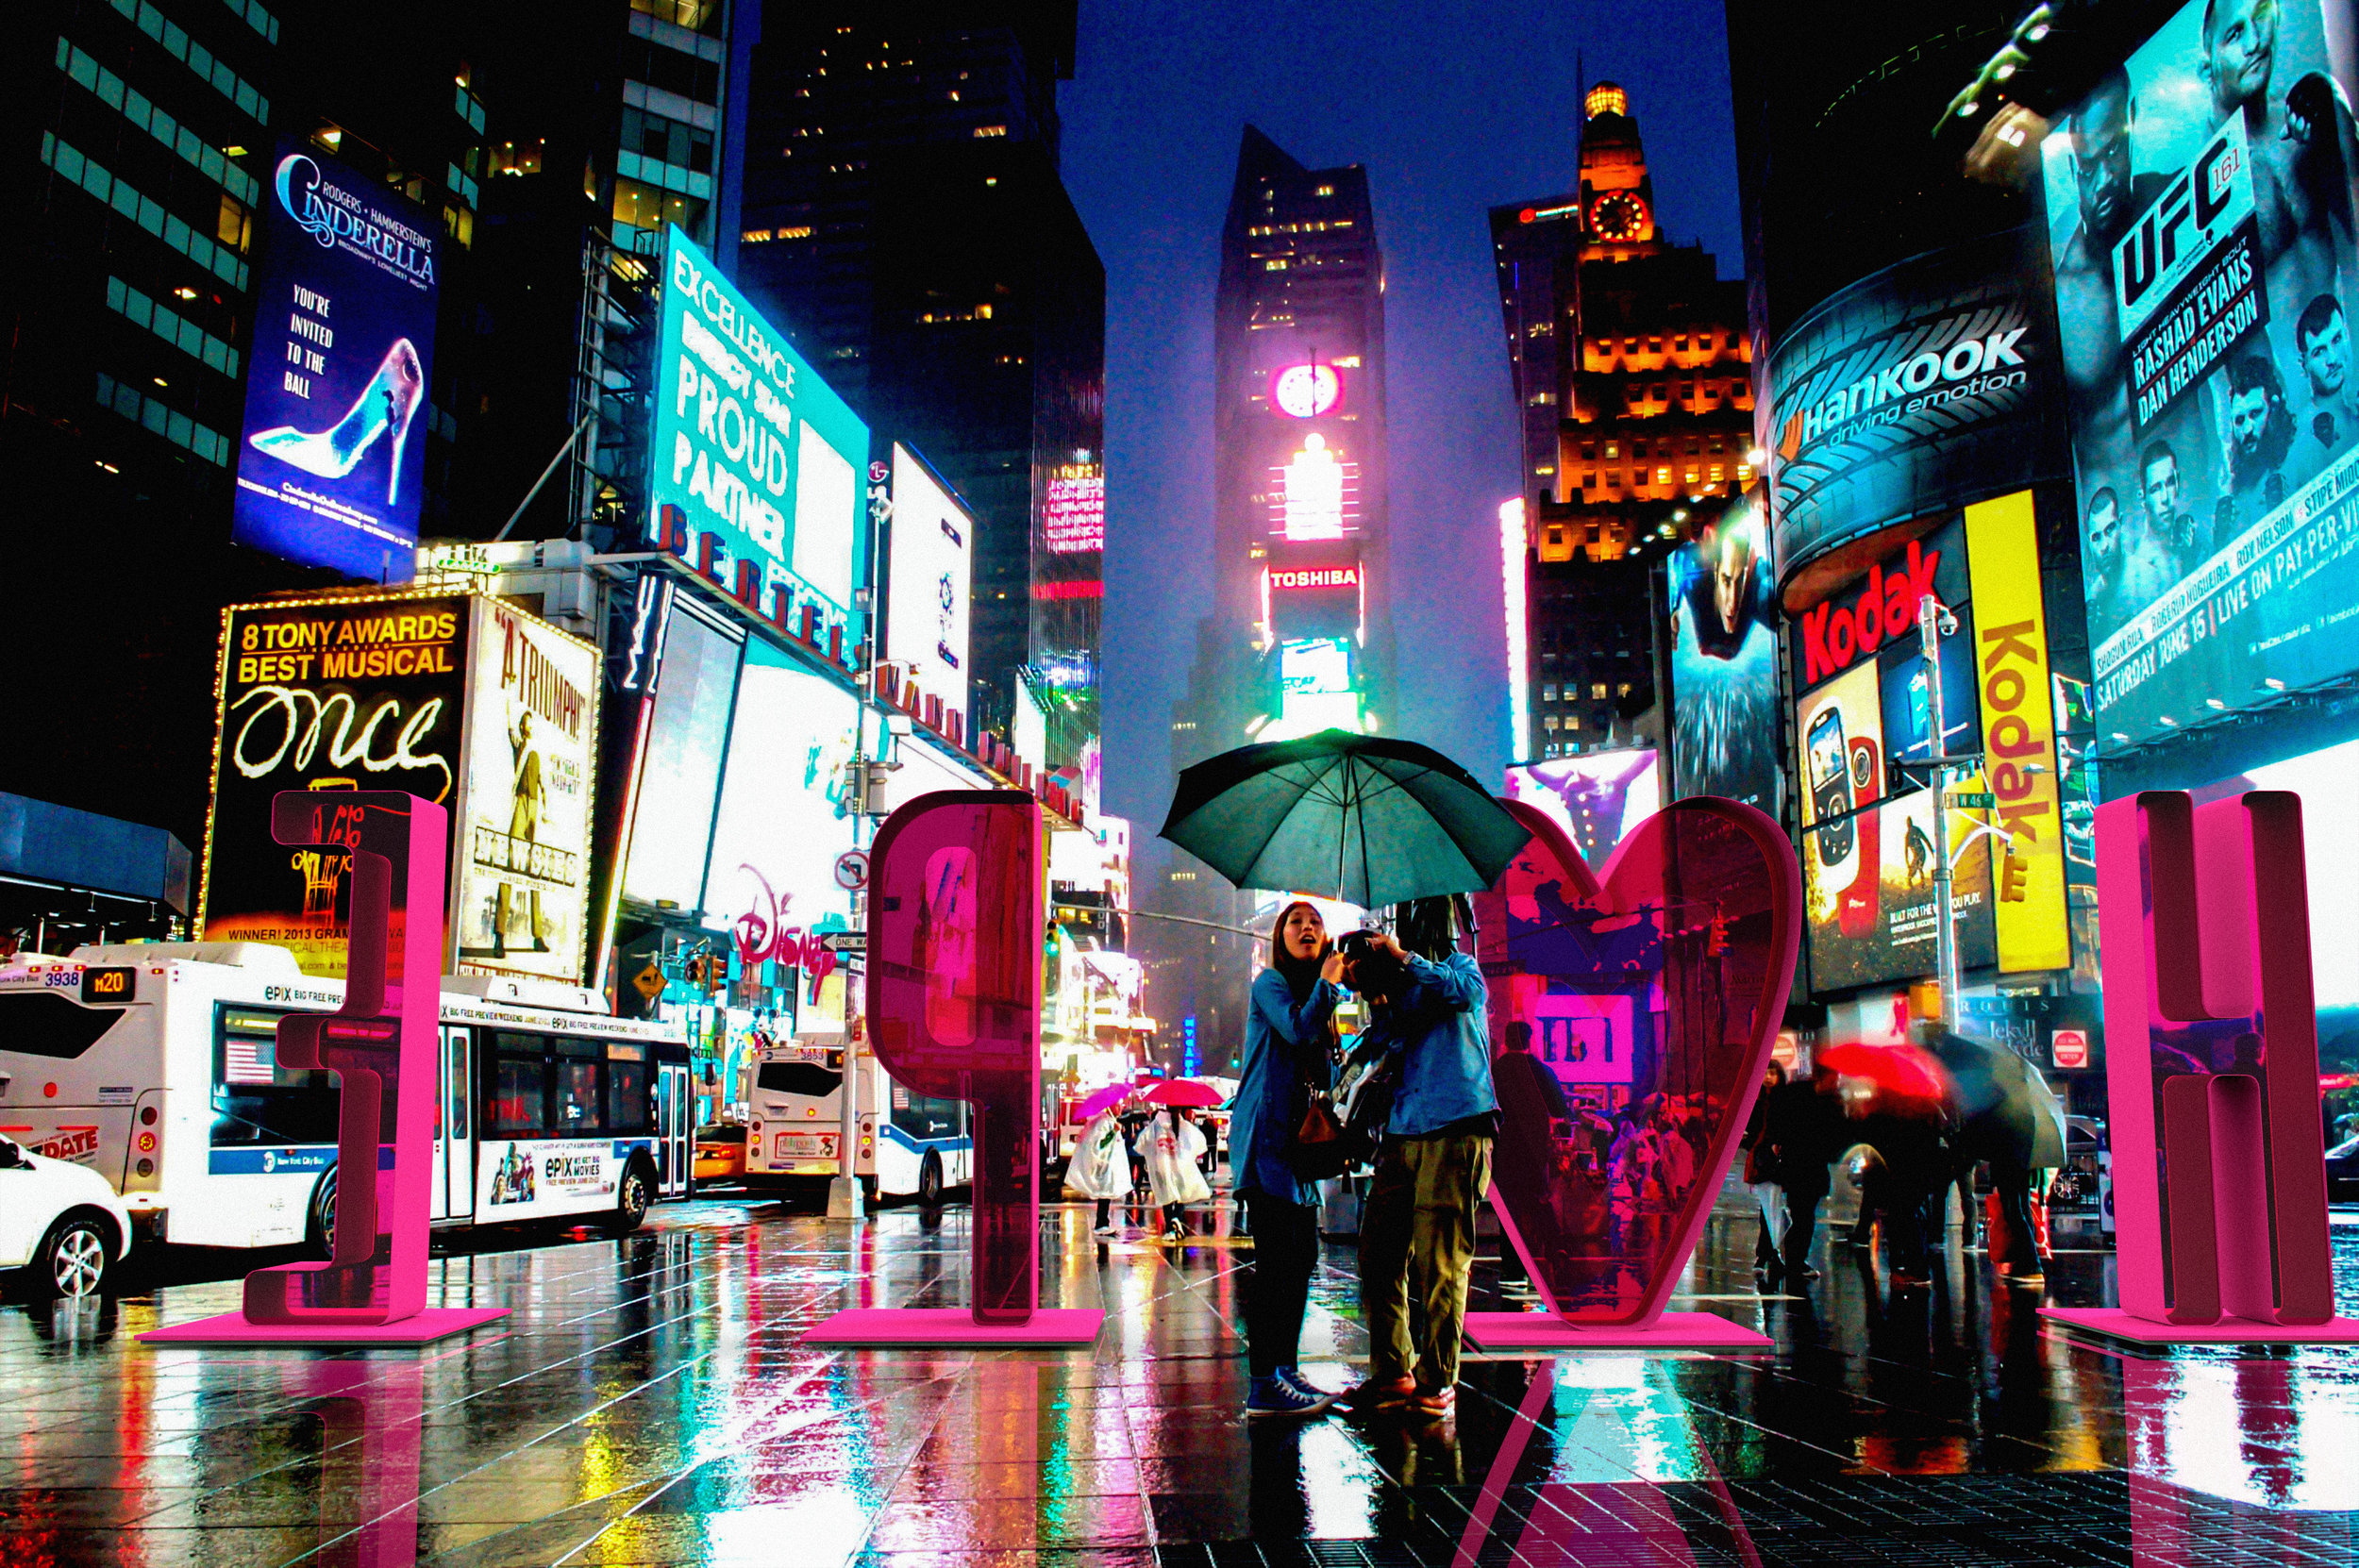 times-square-heart-rendering-nighttime3.jpg